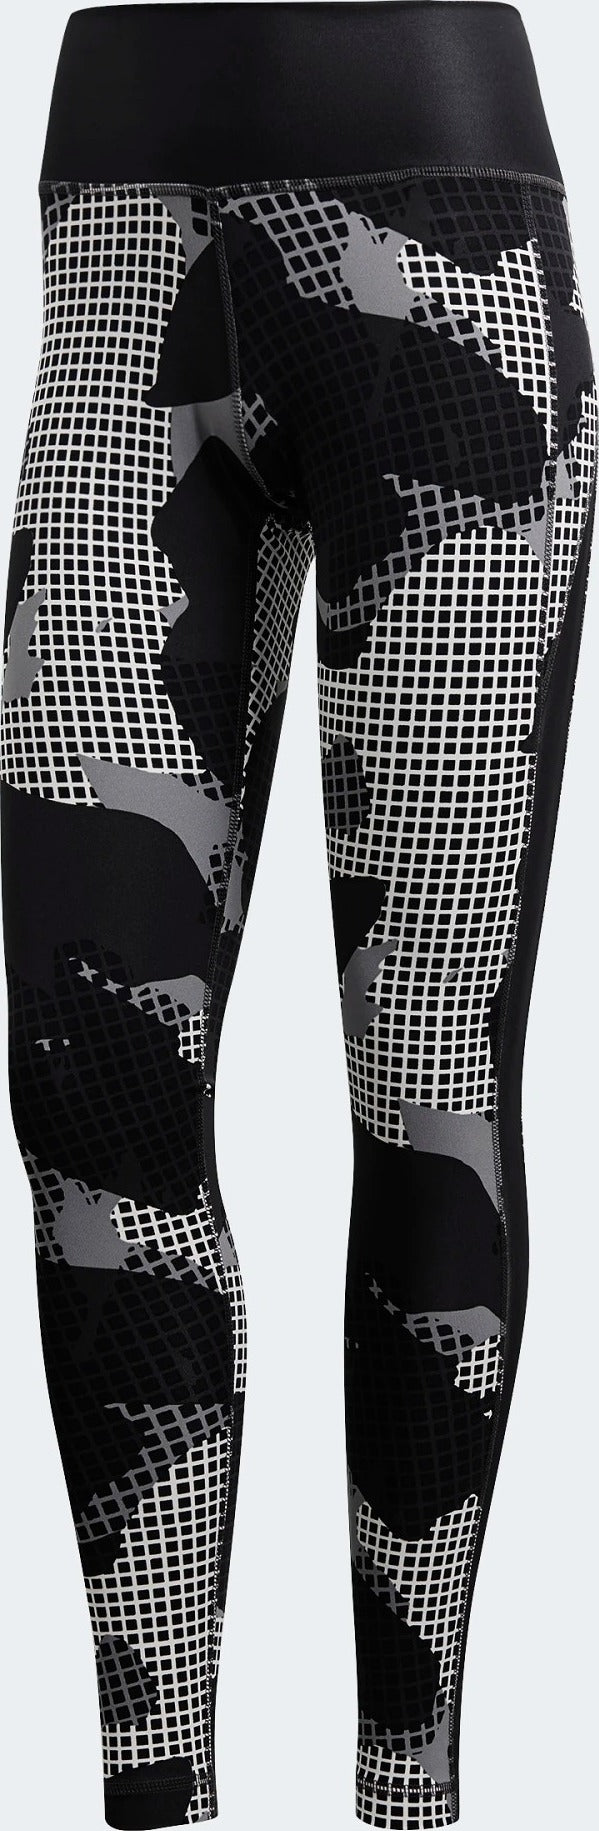 Adidas Believe This High Rise Tights by Stella McCartney Women's